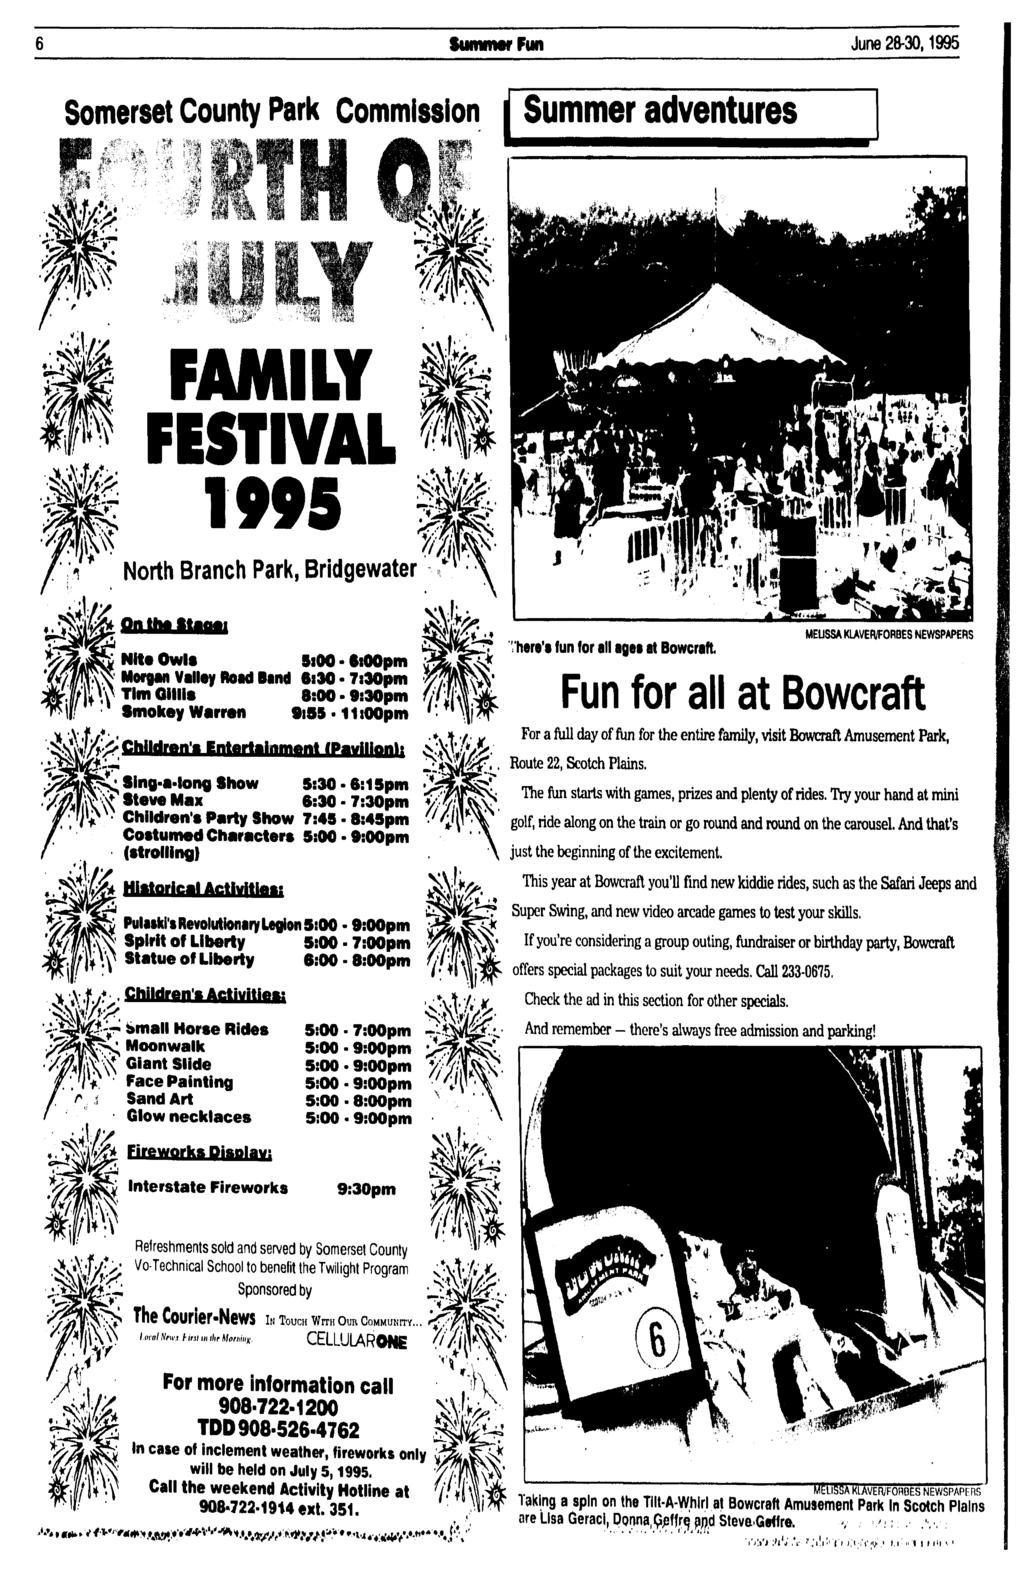 Summer Fun June 28-30,1995 Somerset County Park Commission Summer adventures p \> FAMLY FESTVAL 1995 North Branch Park, Bridgewater Onth*ftt Nlte Owls * 00 - $i00pm Morgan Valley Road Band 6i30